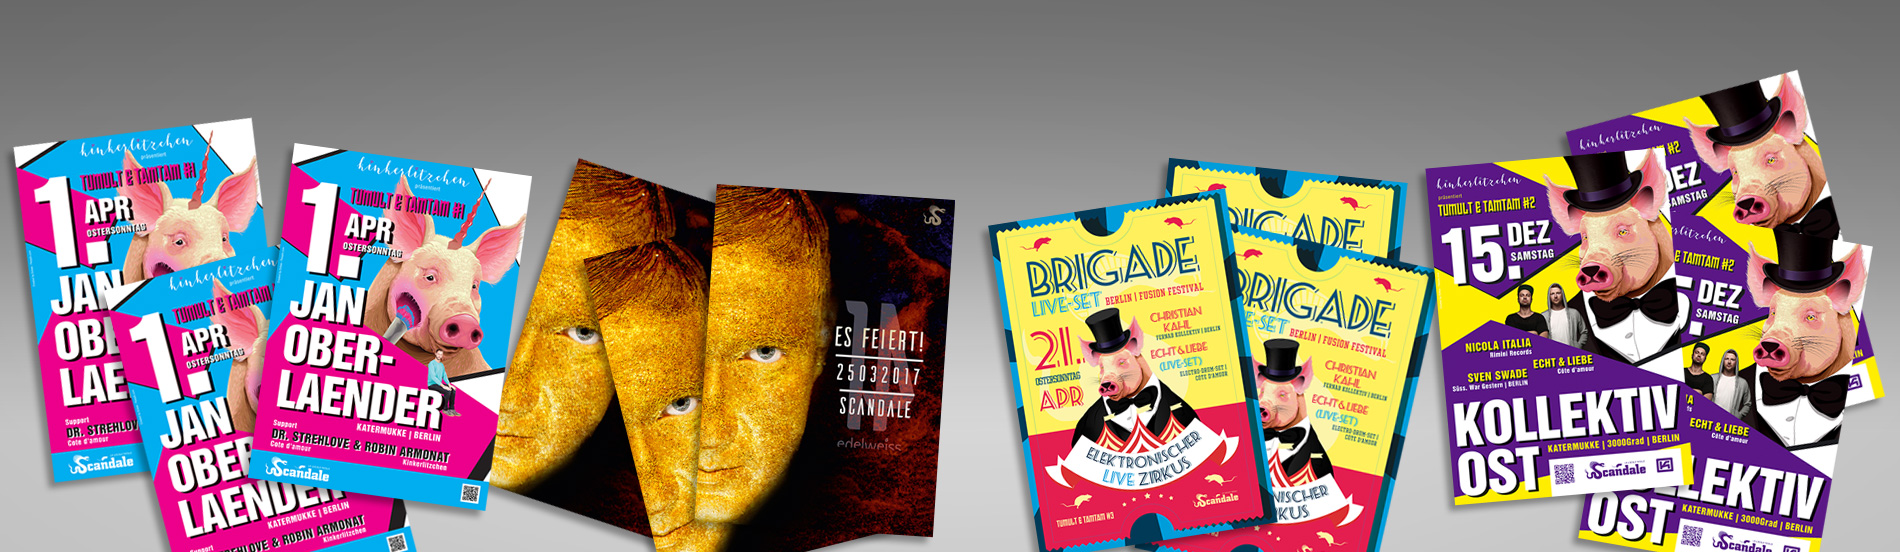 carographic Party event scandale cottbus grafik gestaltung layout